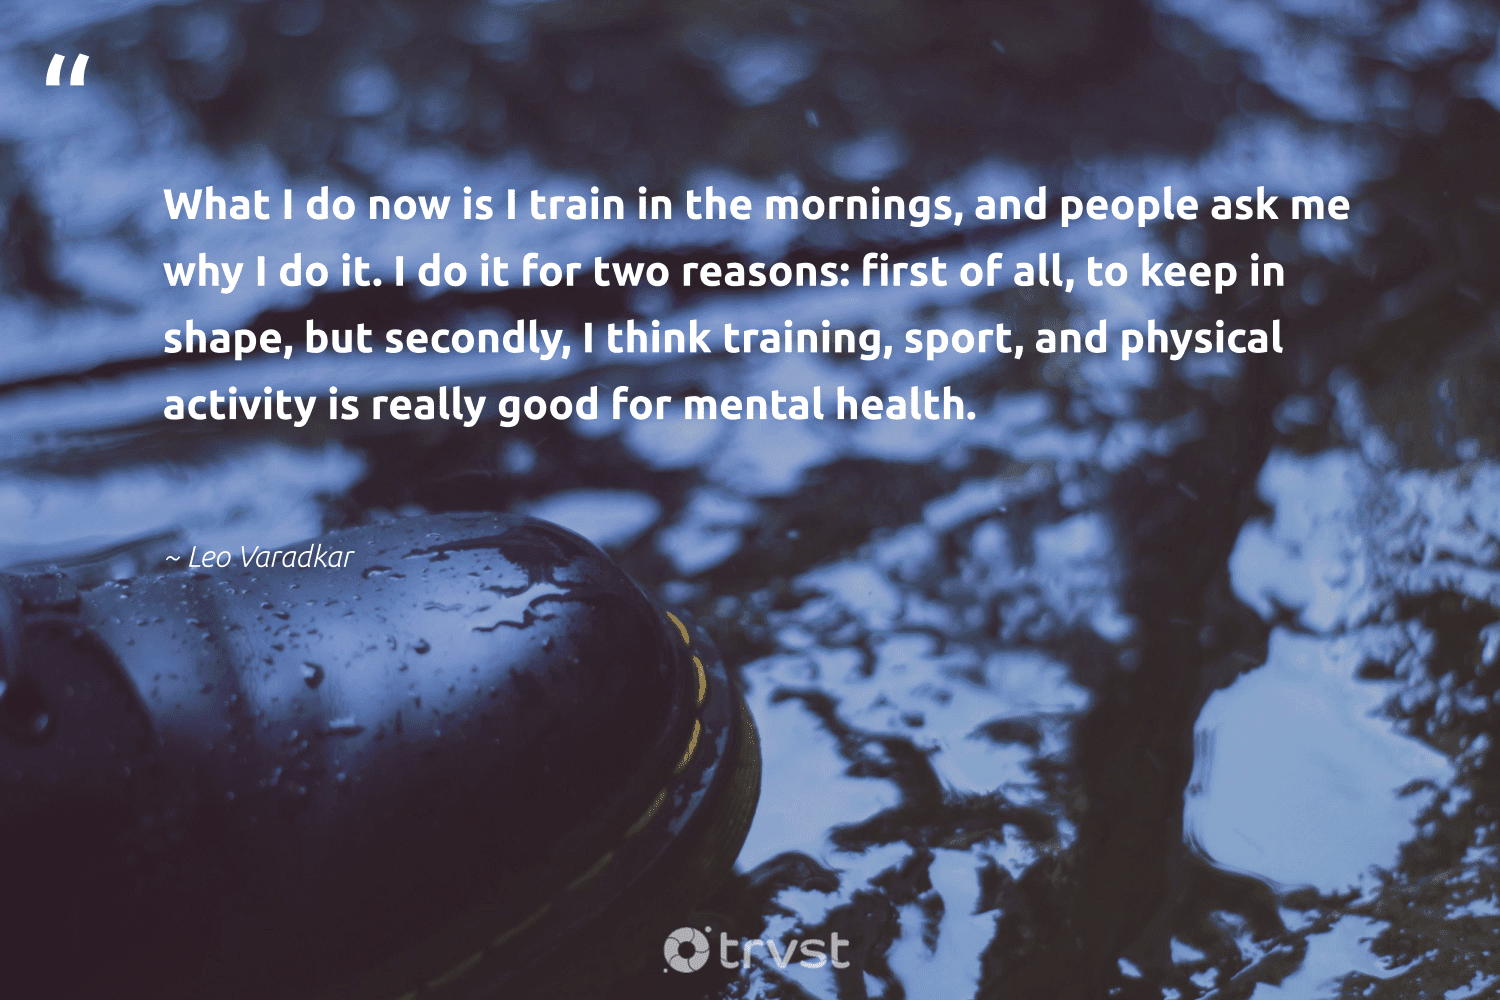 """""""What I do now is I train in the mornings, and people ask me why I do it. I do it for two reasons: first of all, to keep in shape, but secondly, I think training, sport, and physical activity is really good for mental health.""""  - Leo Varadkar #trvst #quotes #mentalhealth #health #depression #togetherwecan #mindset #ecoconscious #mentalhealthawareness #begreat #changemakers #thinkgreen"""